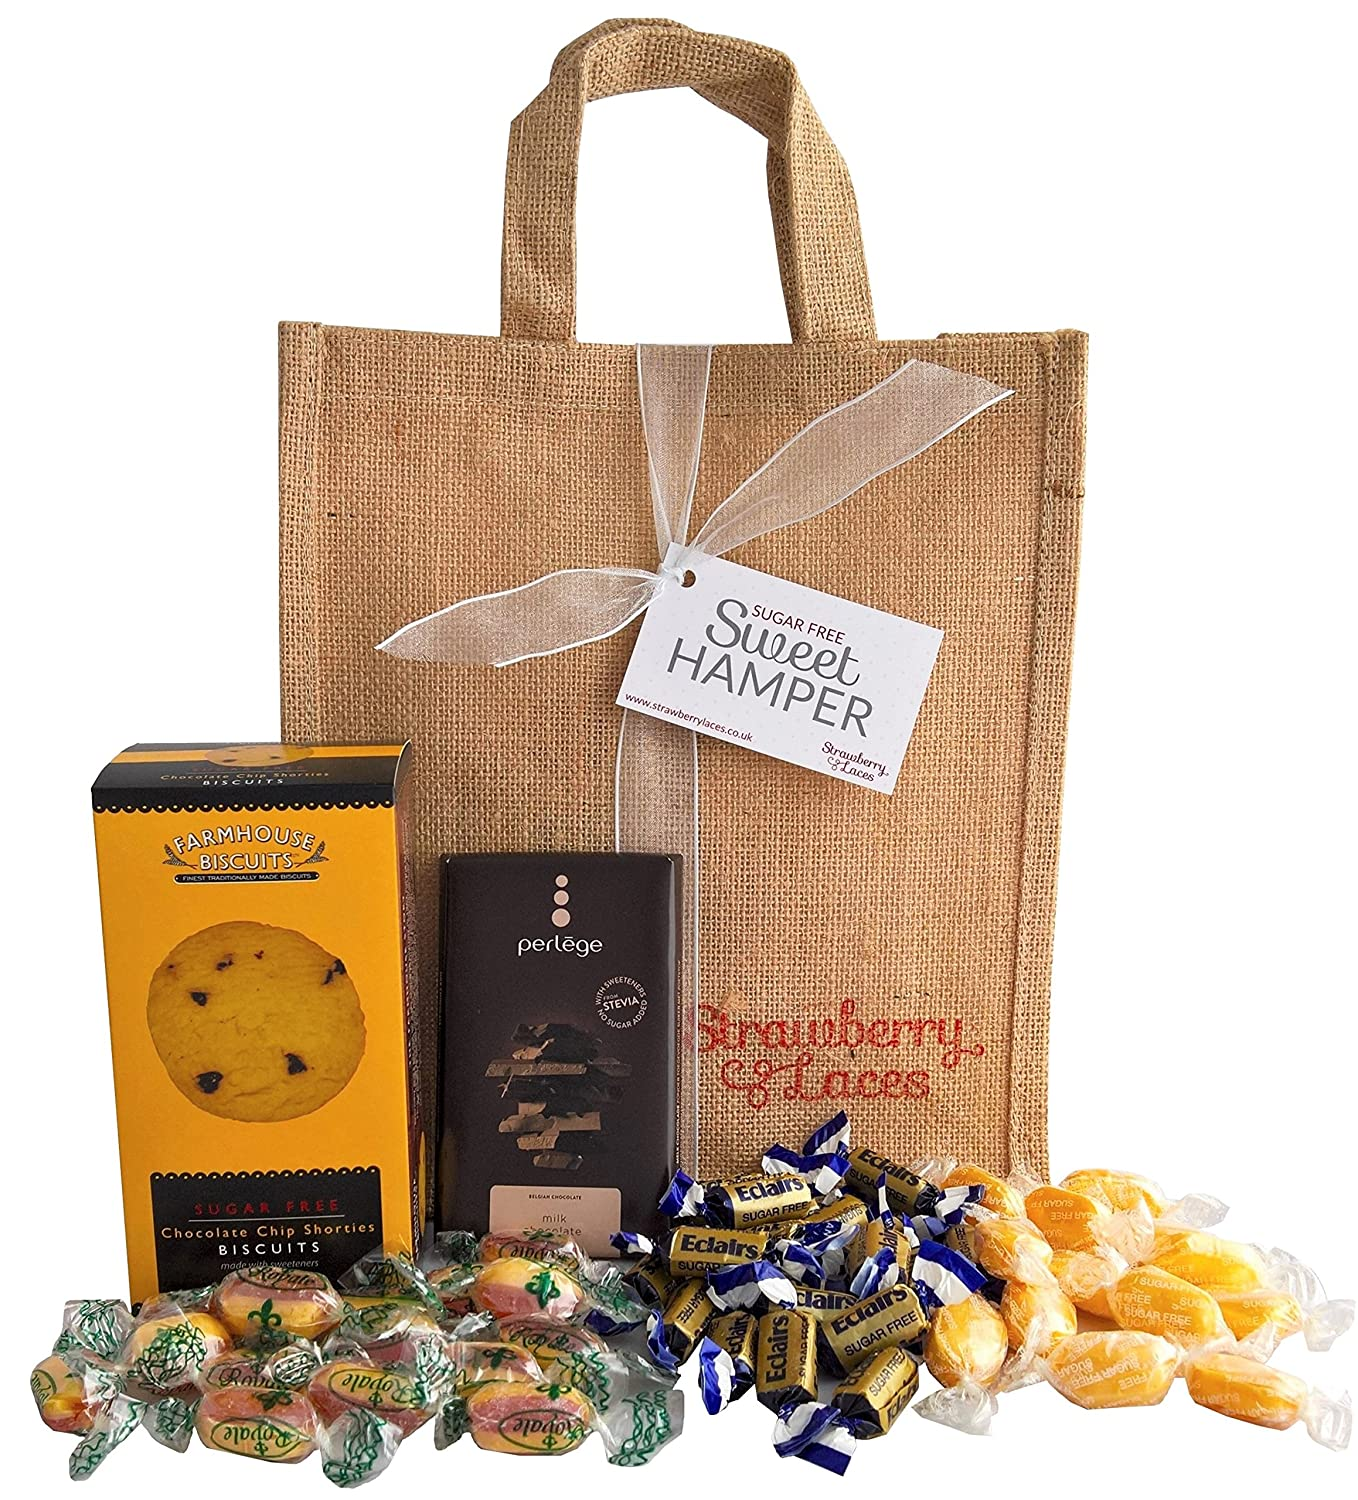 Sugar free hamper bag sweets biscuits chocolate great sugar free hamper bag sweets biscuits chocolate great diabetic gift for christmas birthday anniversary mothers fathers day valentines negle Choice Image